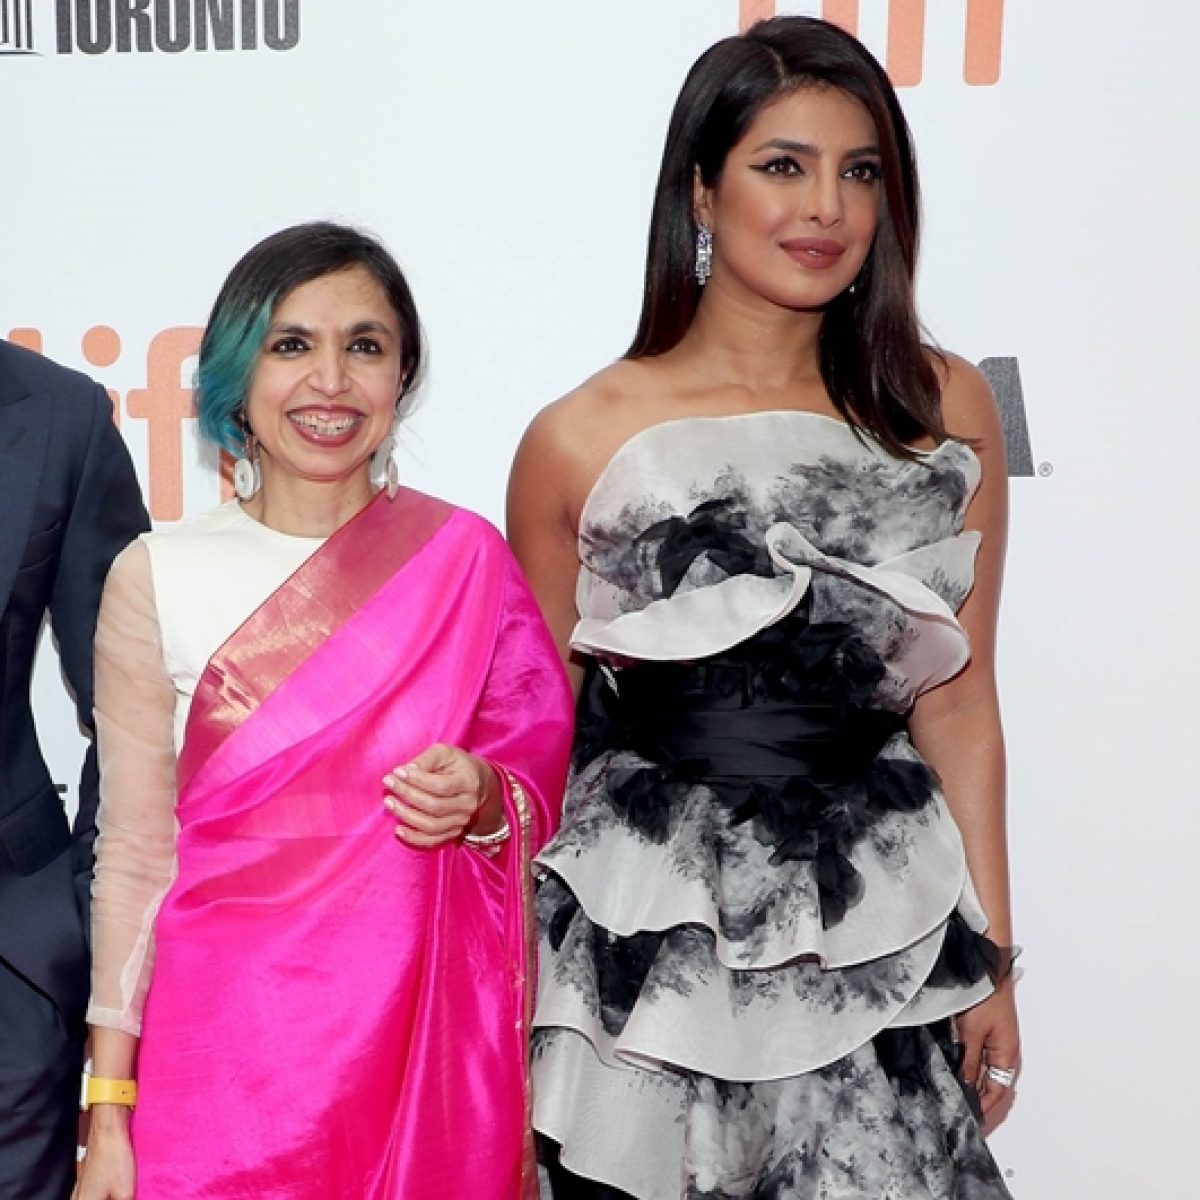 Here's why Priyanka Chopra cried uncontrollably on sets of 'The Sky Is Pink'